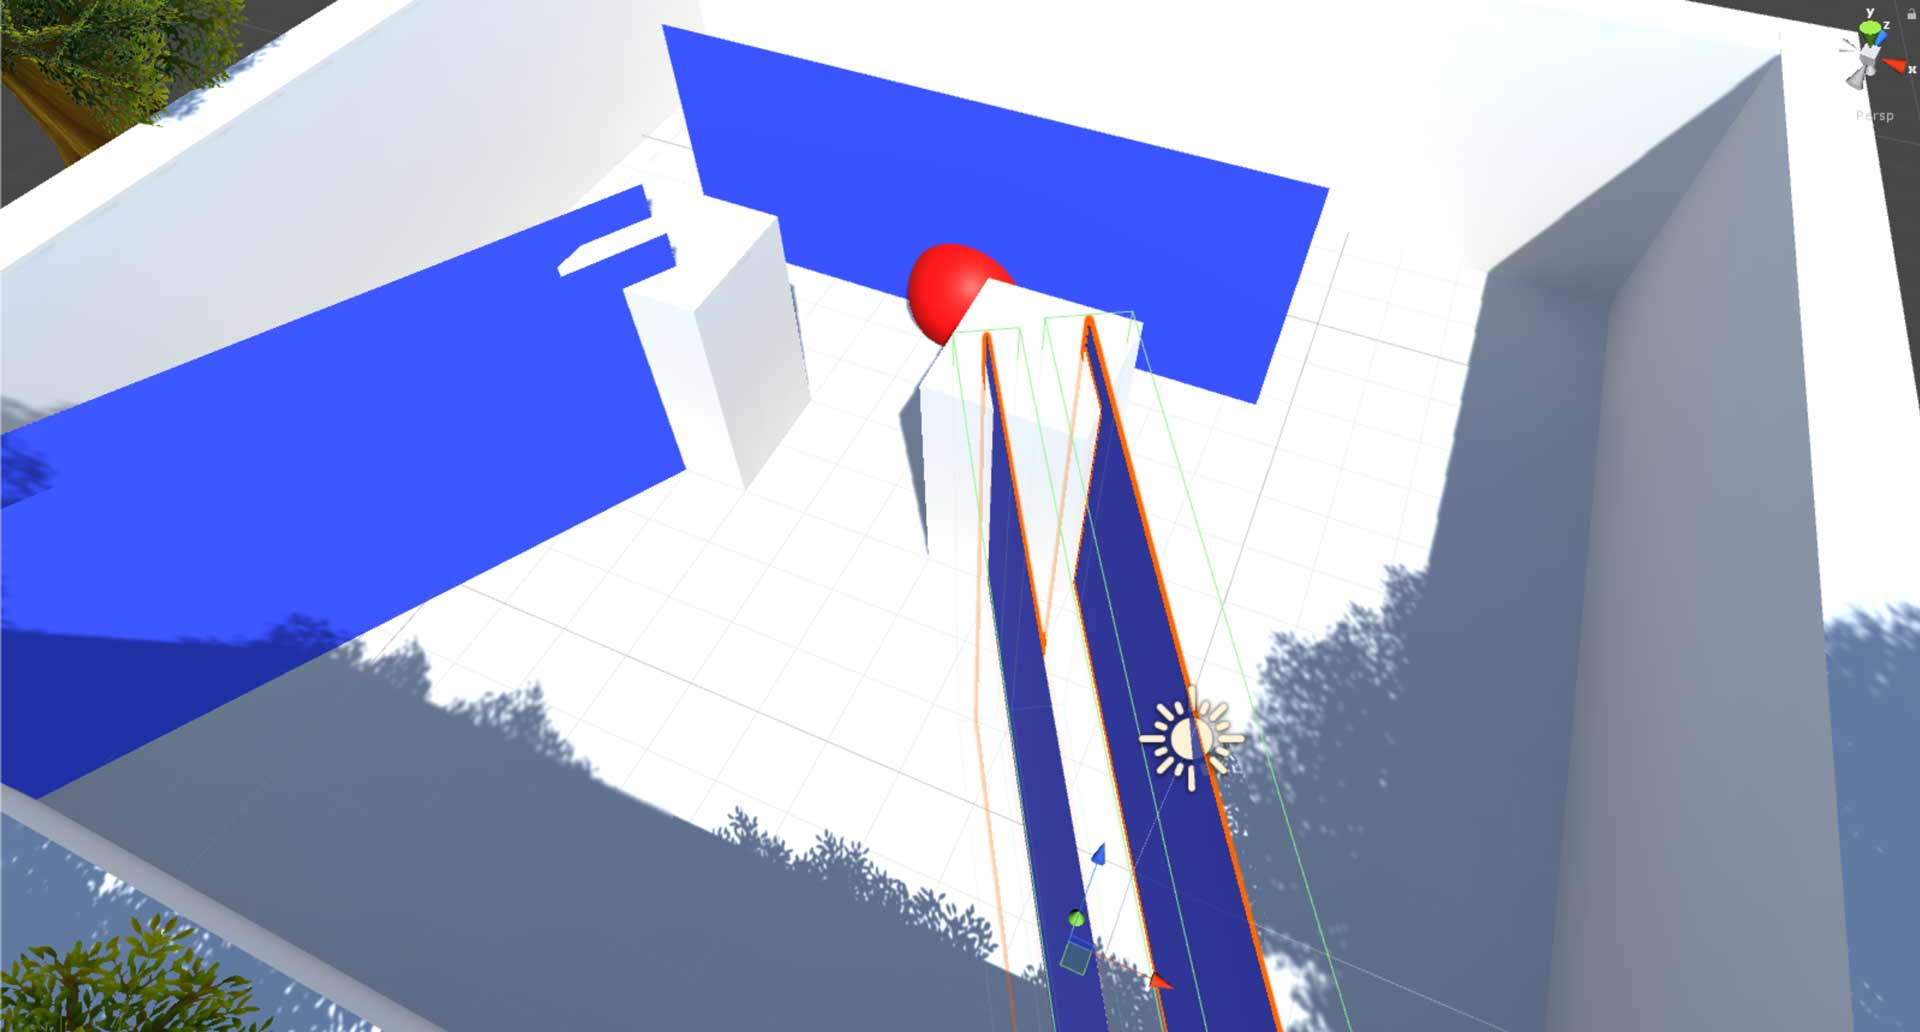 Blue Planes to Represent the Teleportation Colliders